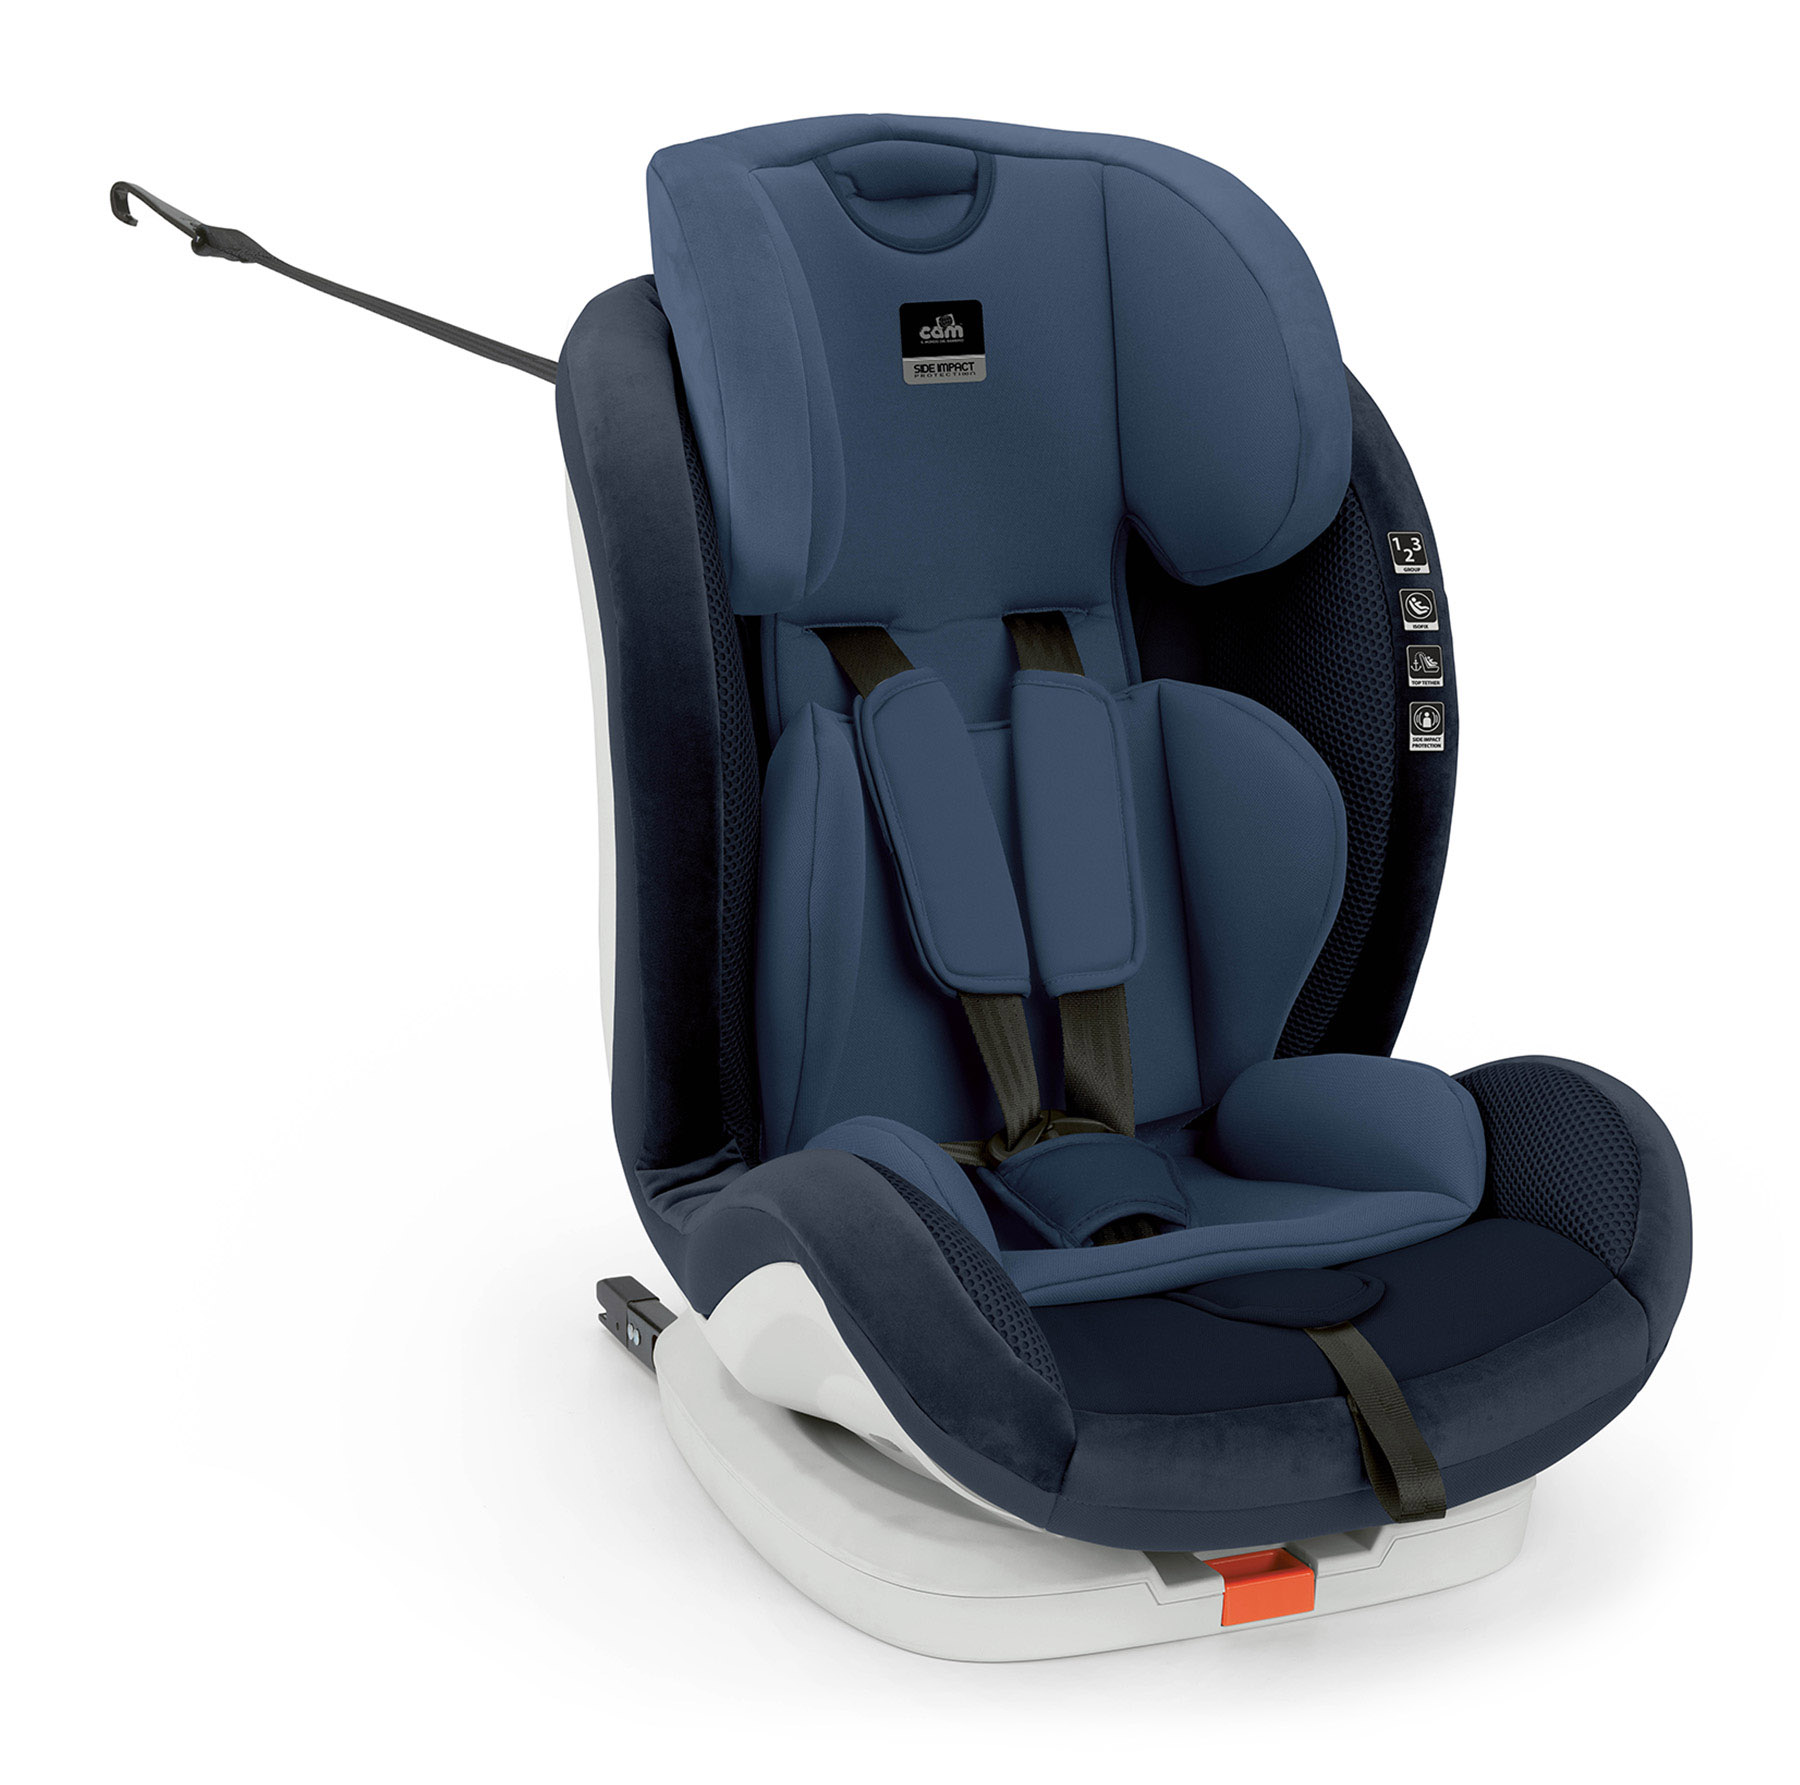 Seggiolini Lorelli Joie Καθισμα Αυτοκινητου Stages Isofix 25kg Pavement